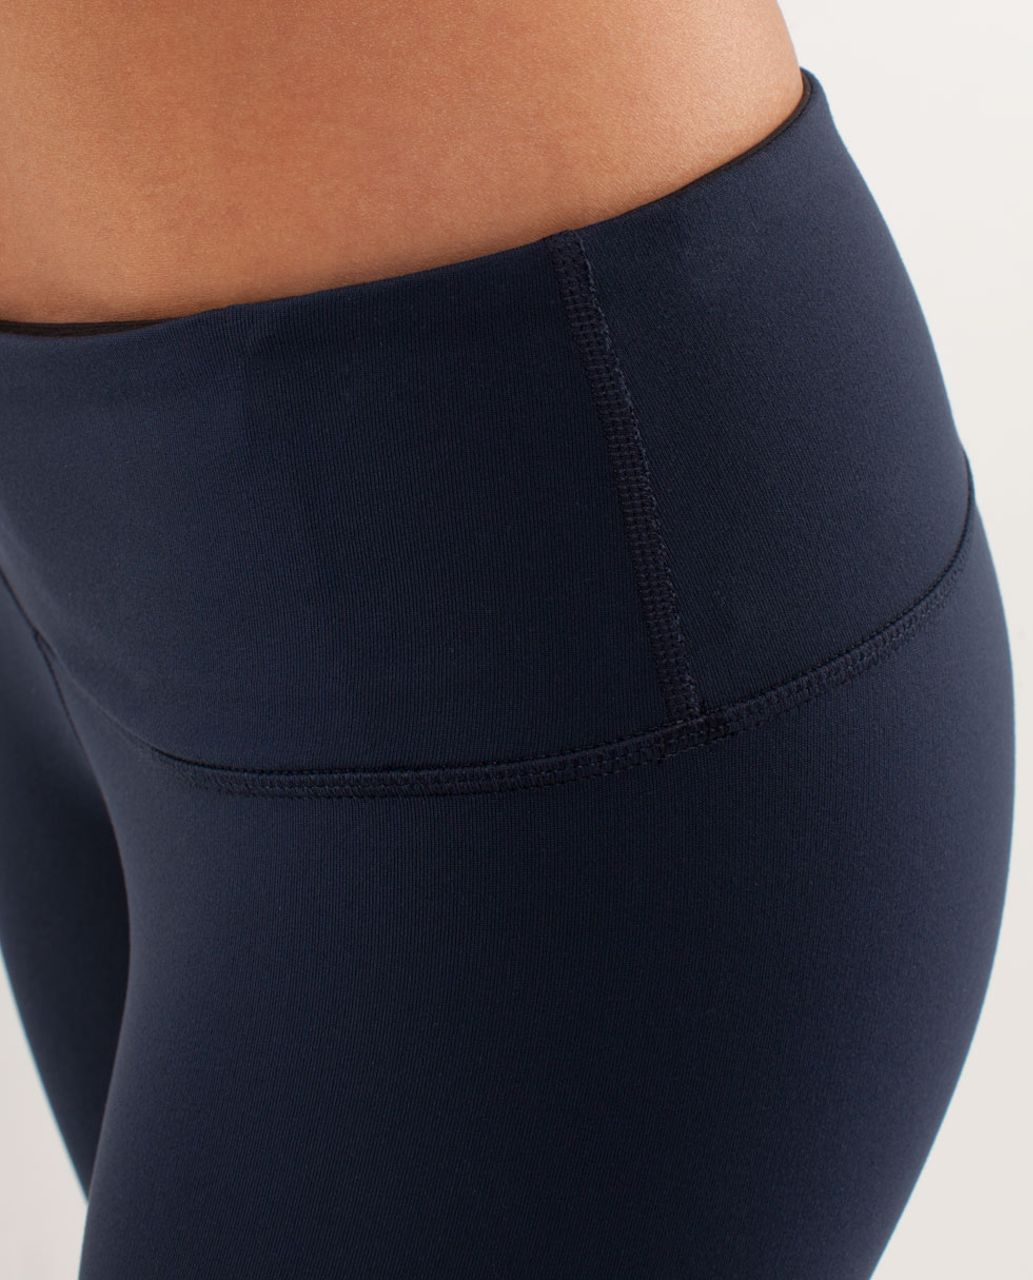 Lululemon Wunder Under Crop *Reversible - Black / Inkwell